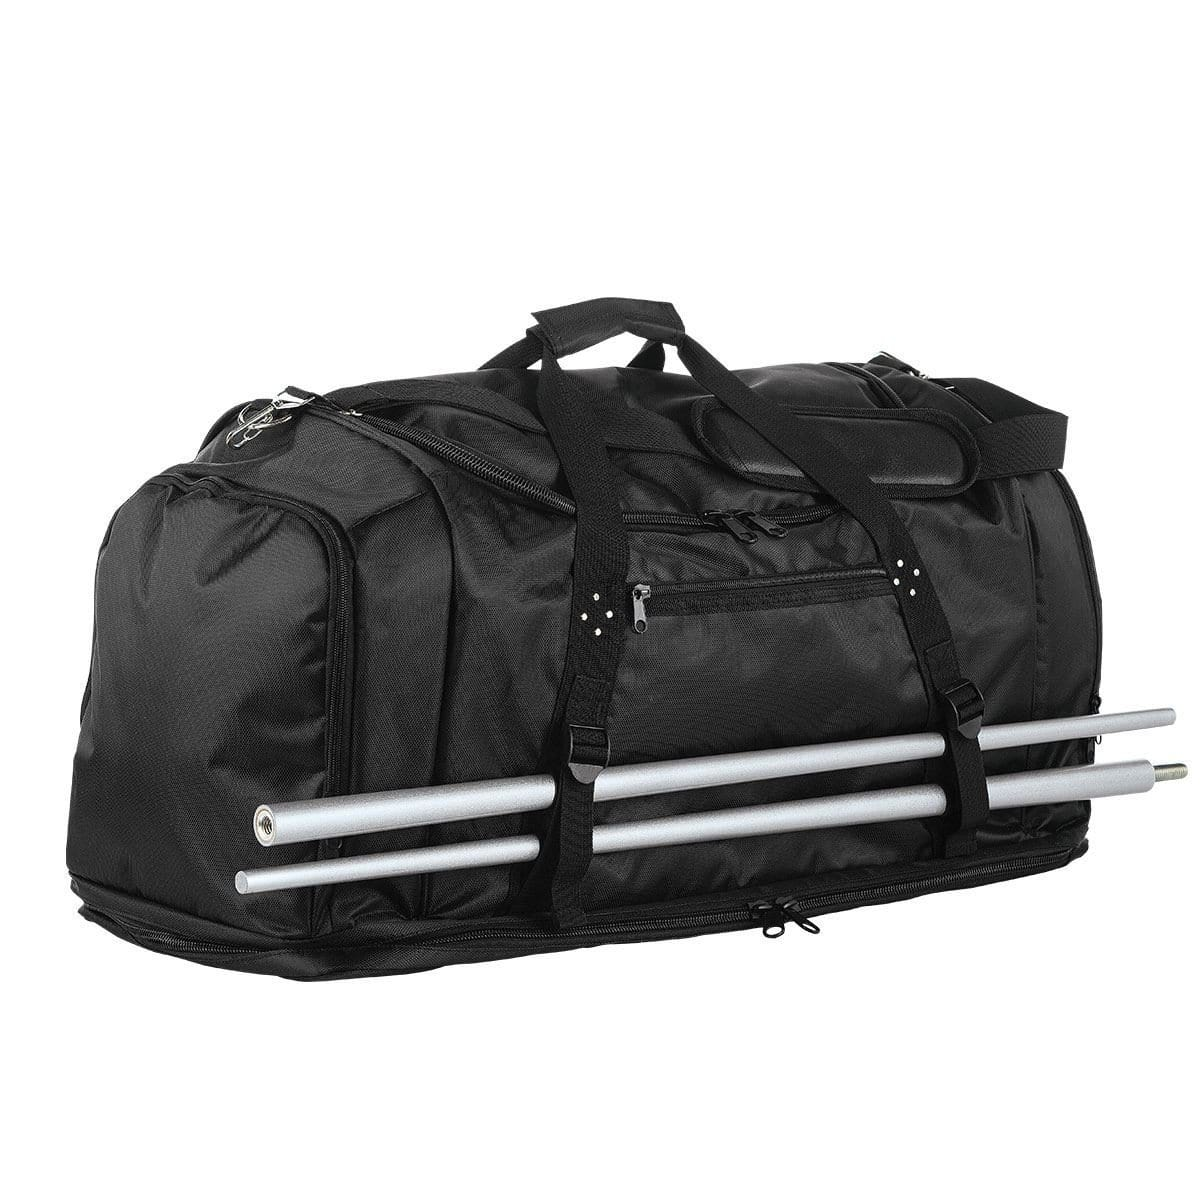 black Century Weapons Bag c2149